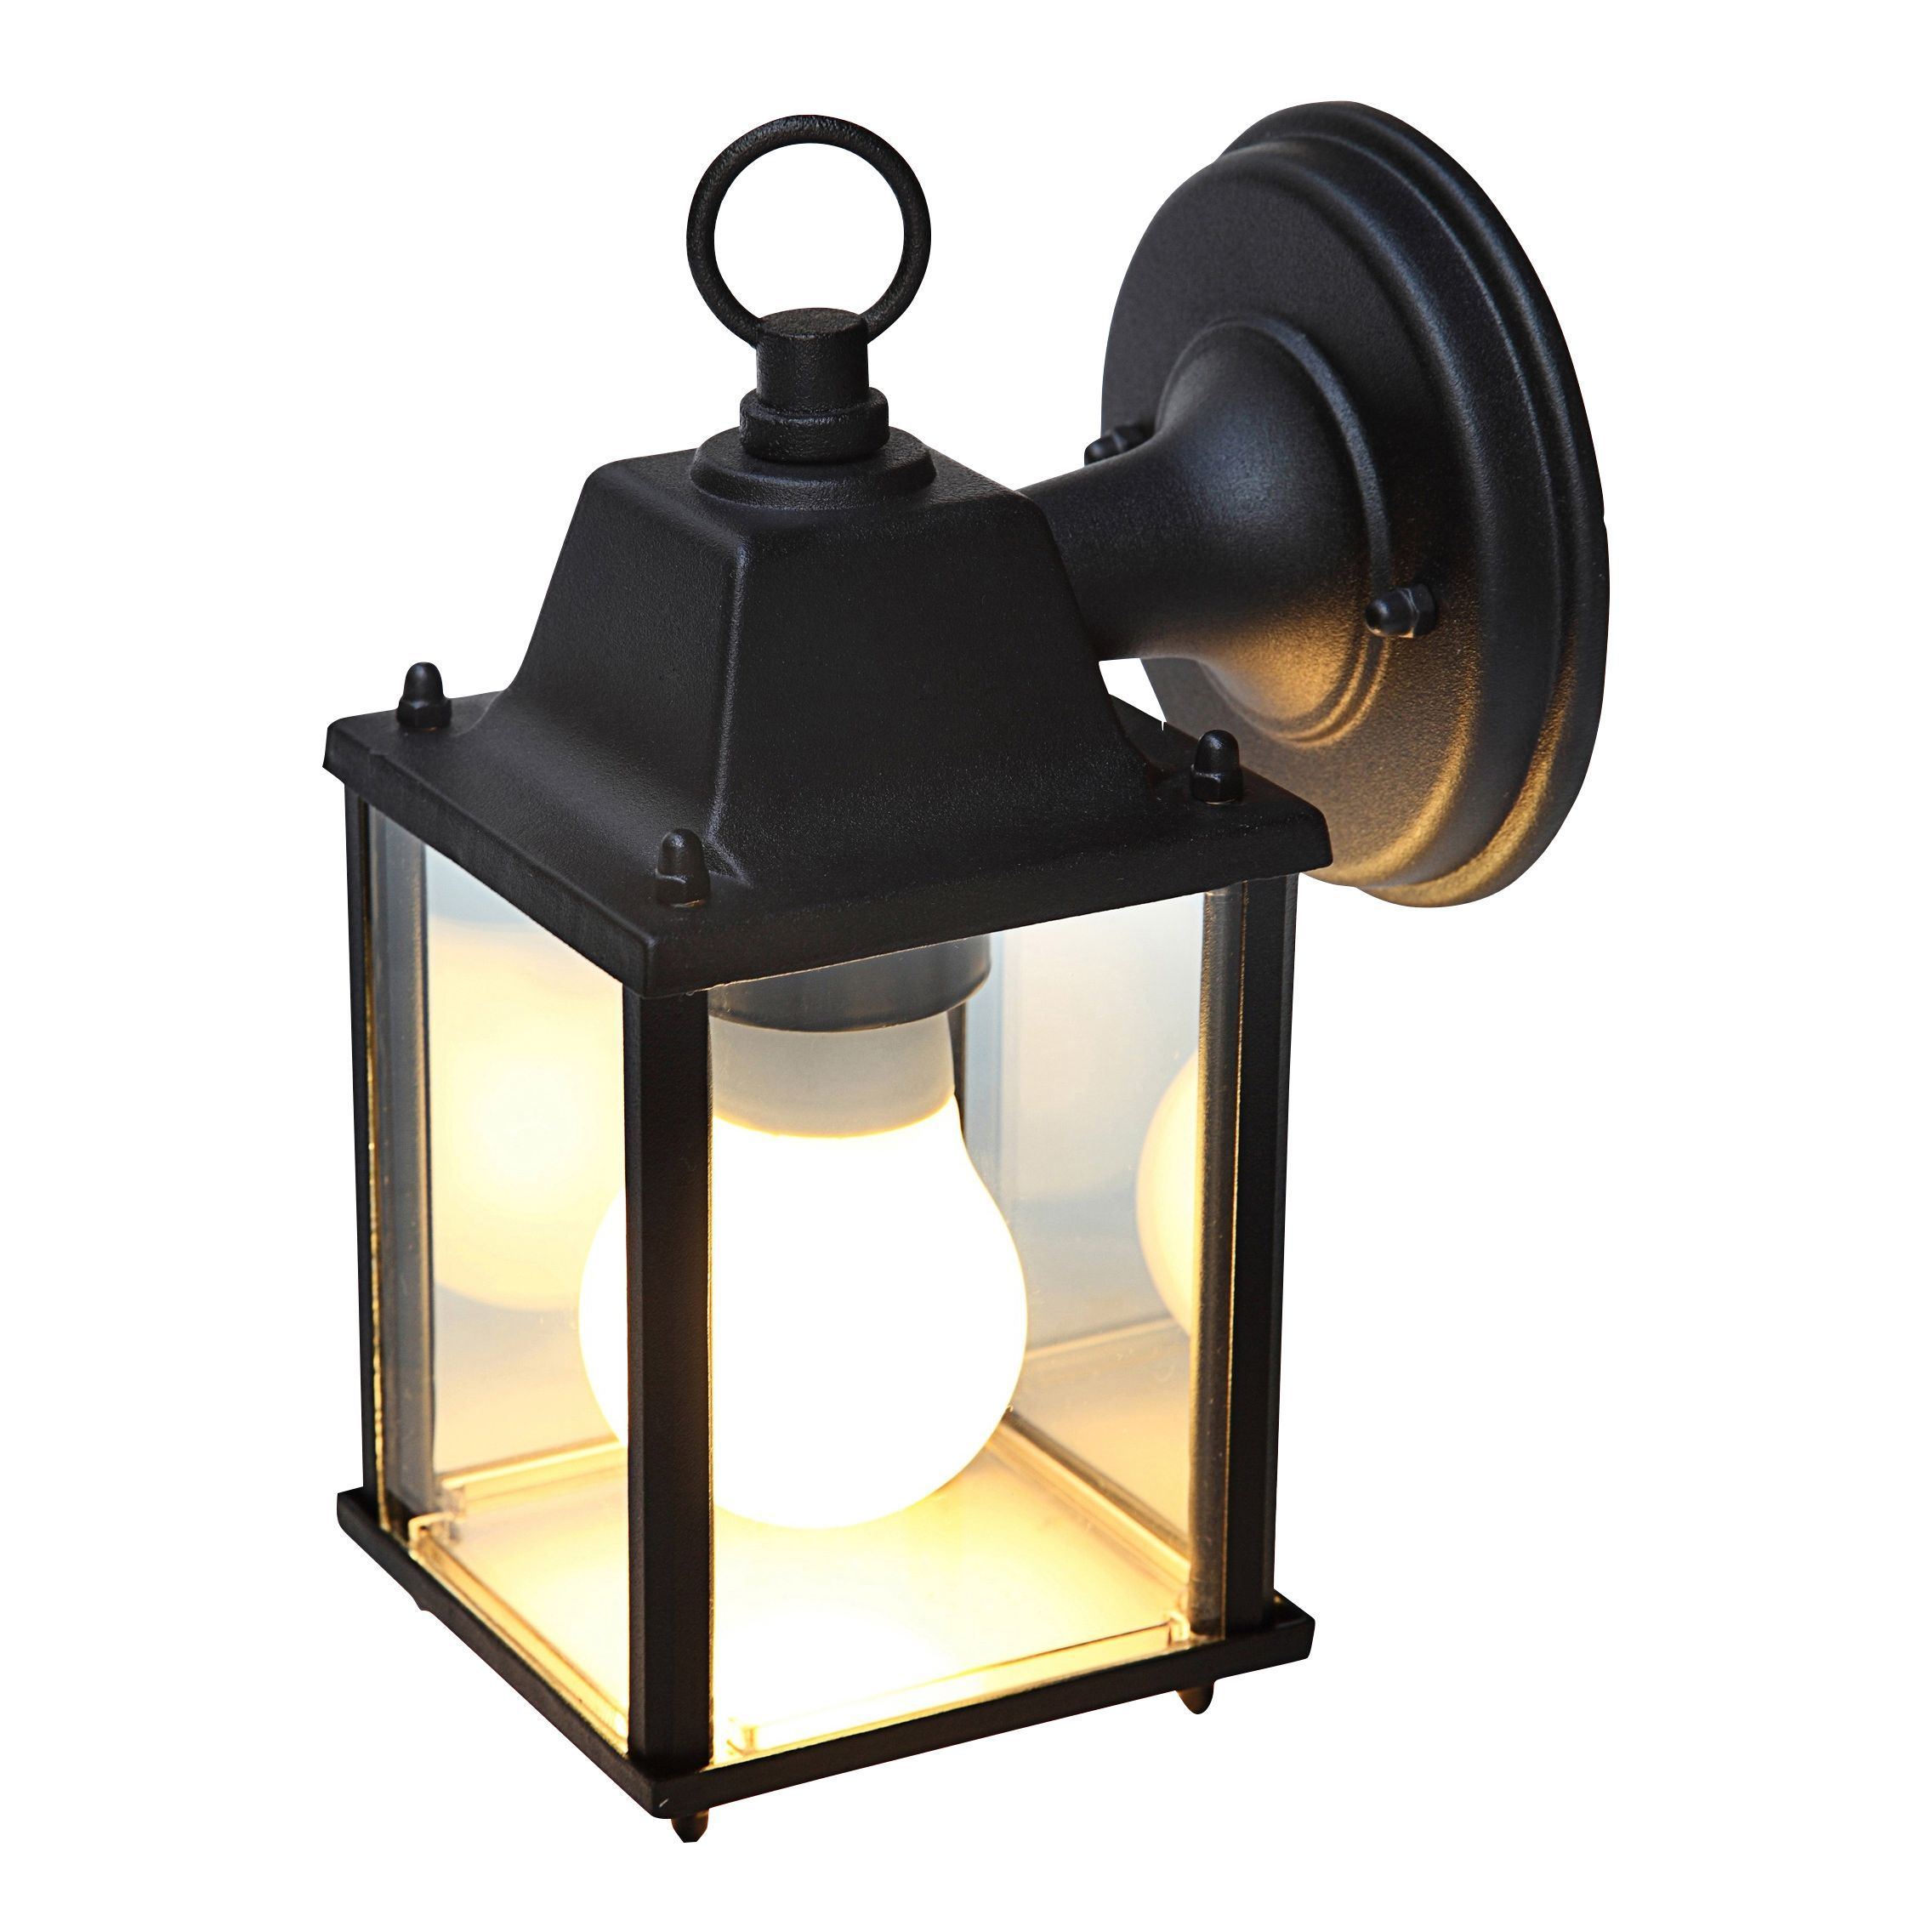 Blooma sollies black mains powered external wall light lights blooma sollies external wall light departments diy at bq aloadofball Gallery